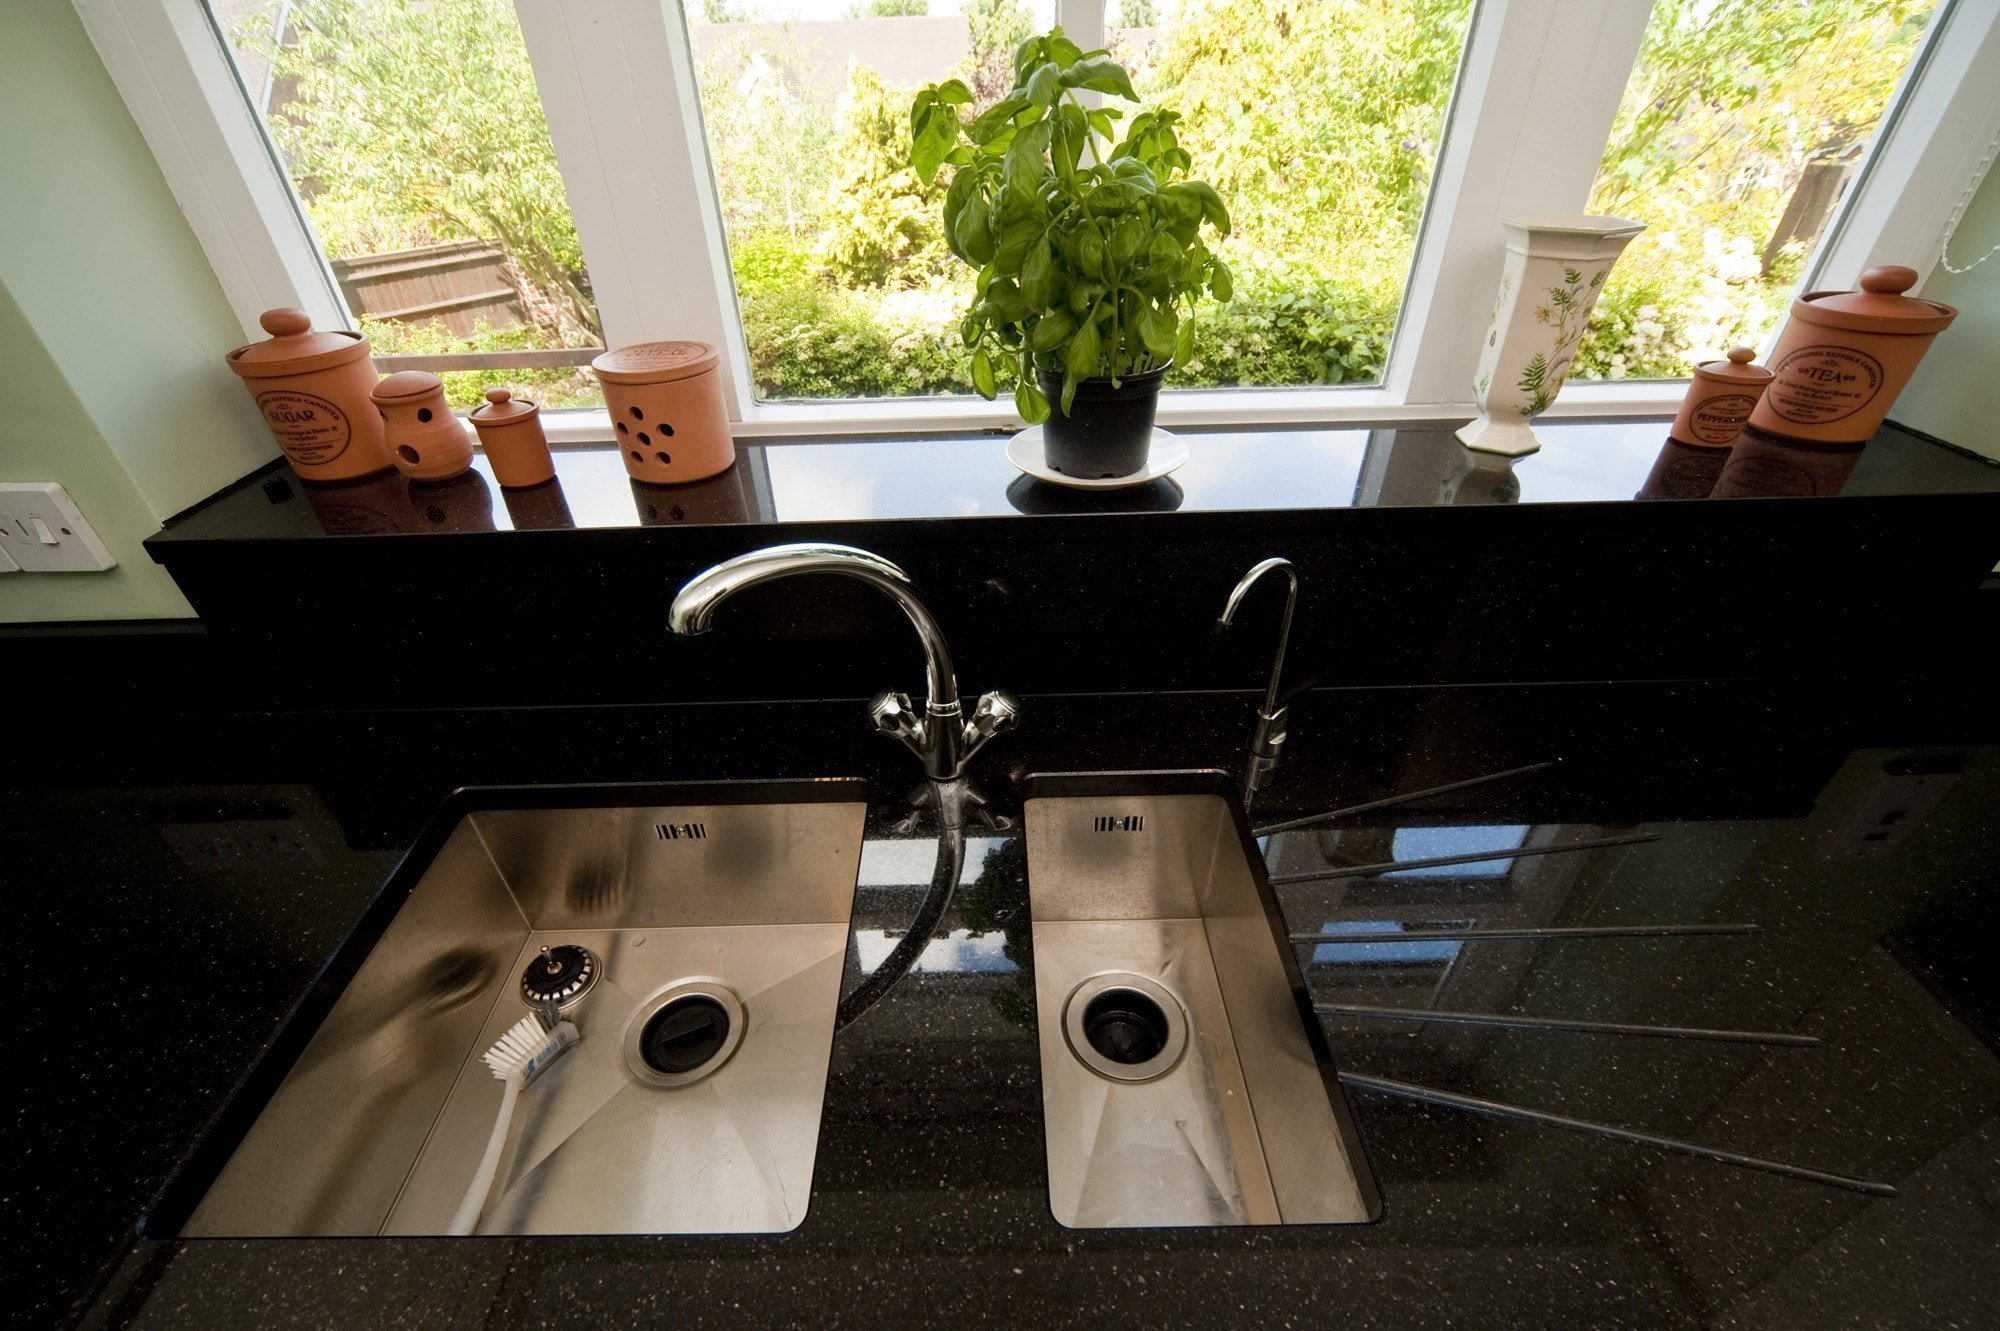 black-galaxy-granite-south-croydon-110224-a-twin-sink-layout-undermount-min